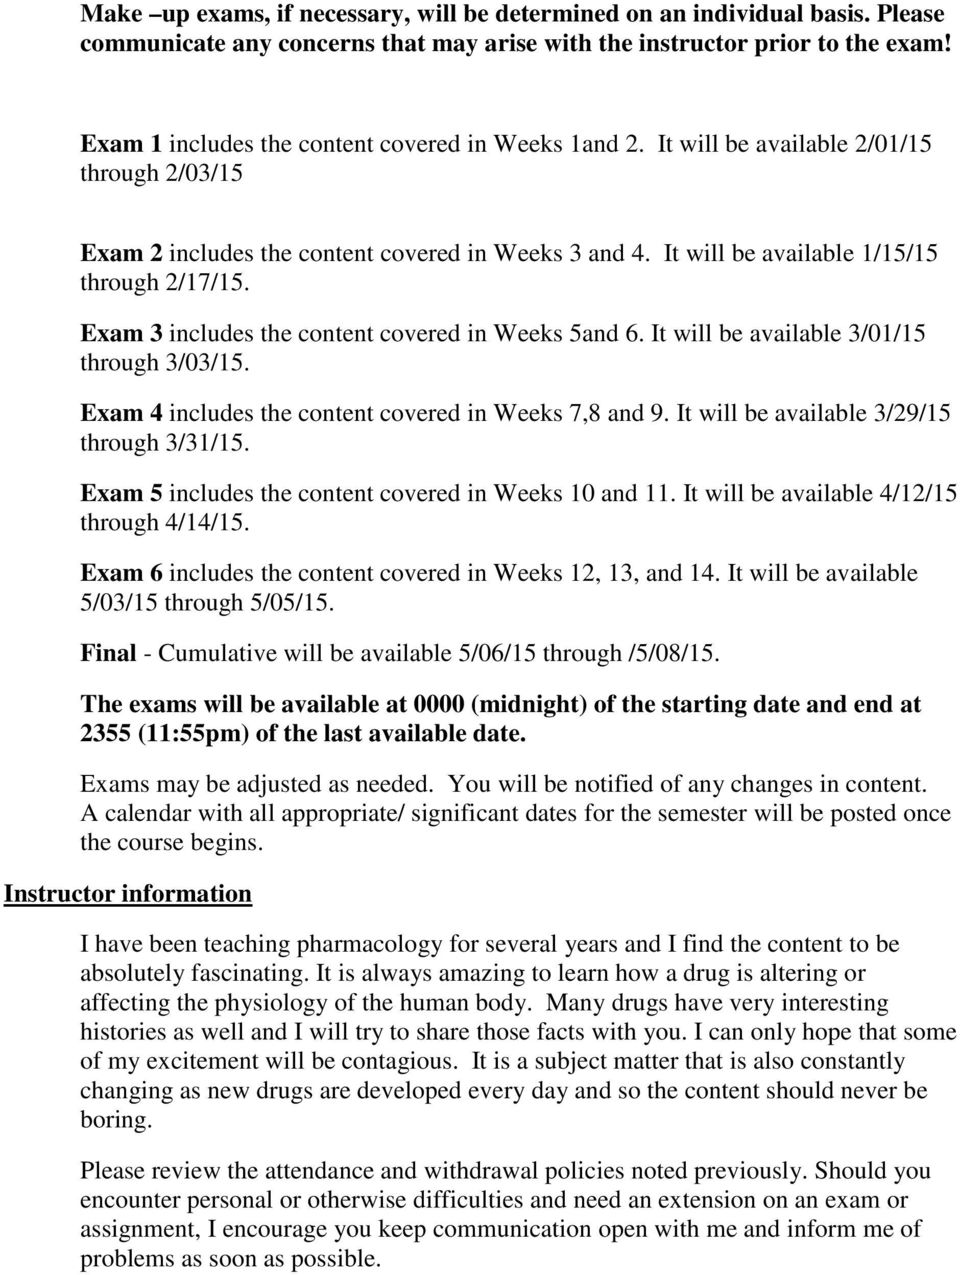 Exam 3 includes the content covered in Weeks 5and 6. It will be available 3/01/15 through 3/03/15. Exam 4 includes the content covered in Weeks 7,8 and 9. It will be available 3/29/15 through 3/31/15.